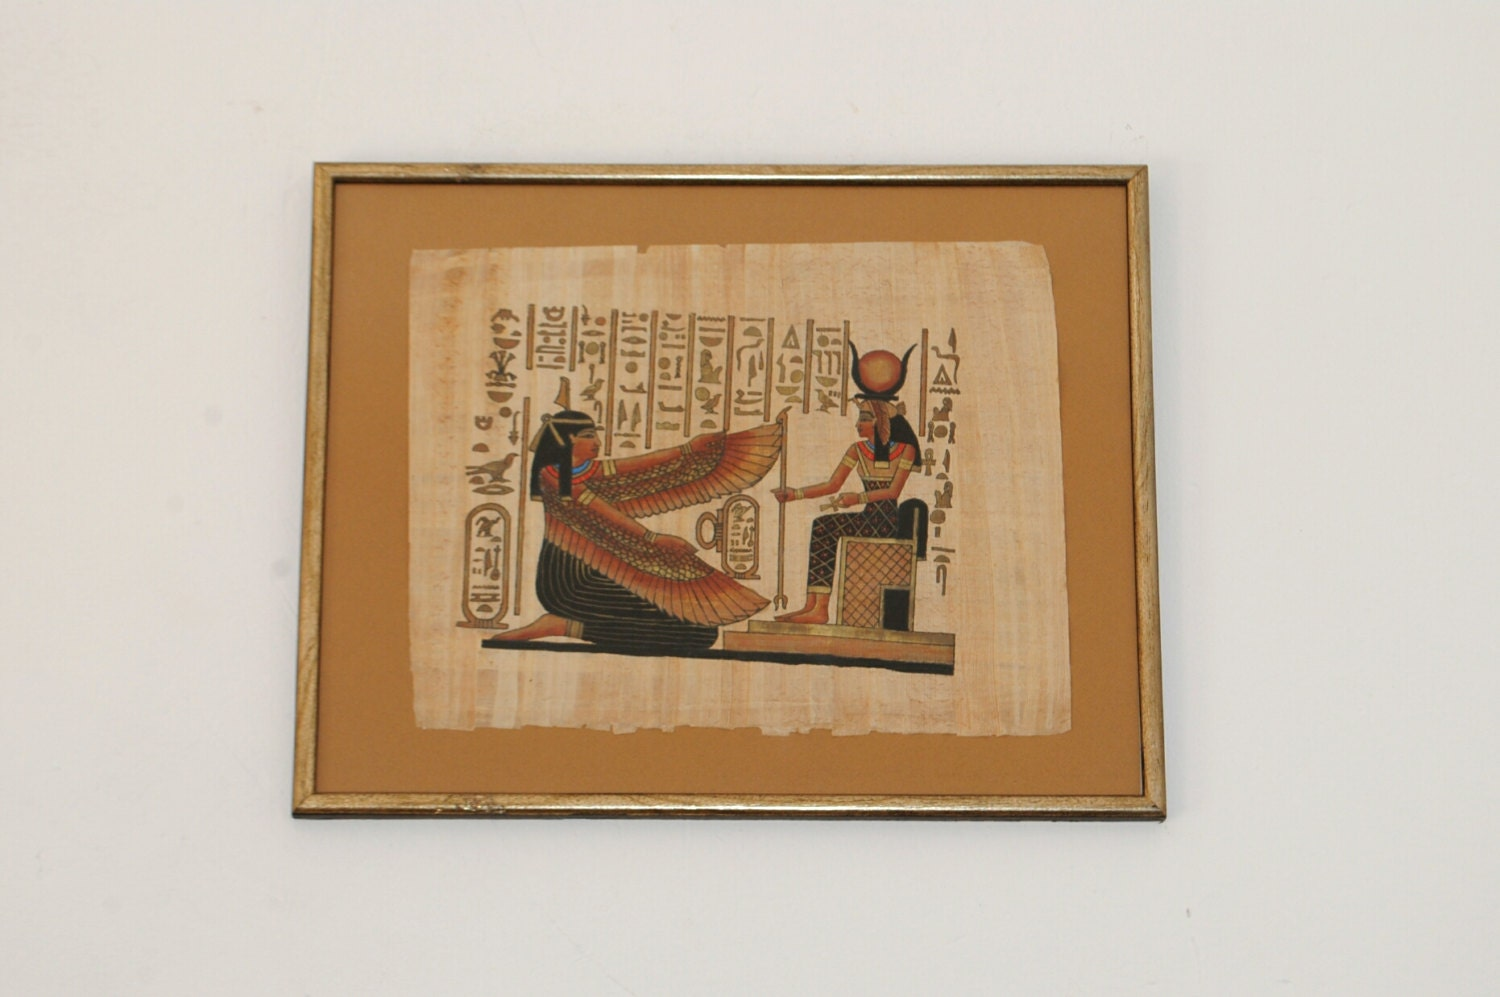 Hathor Maat Large Framed Papyrus Art Egyptian Papyrus Wall